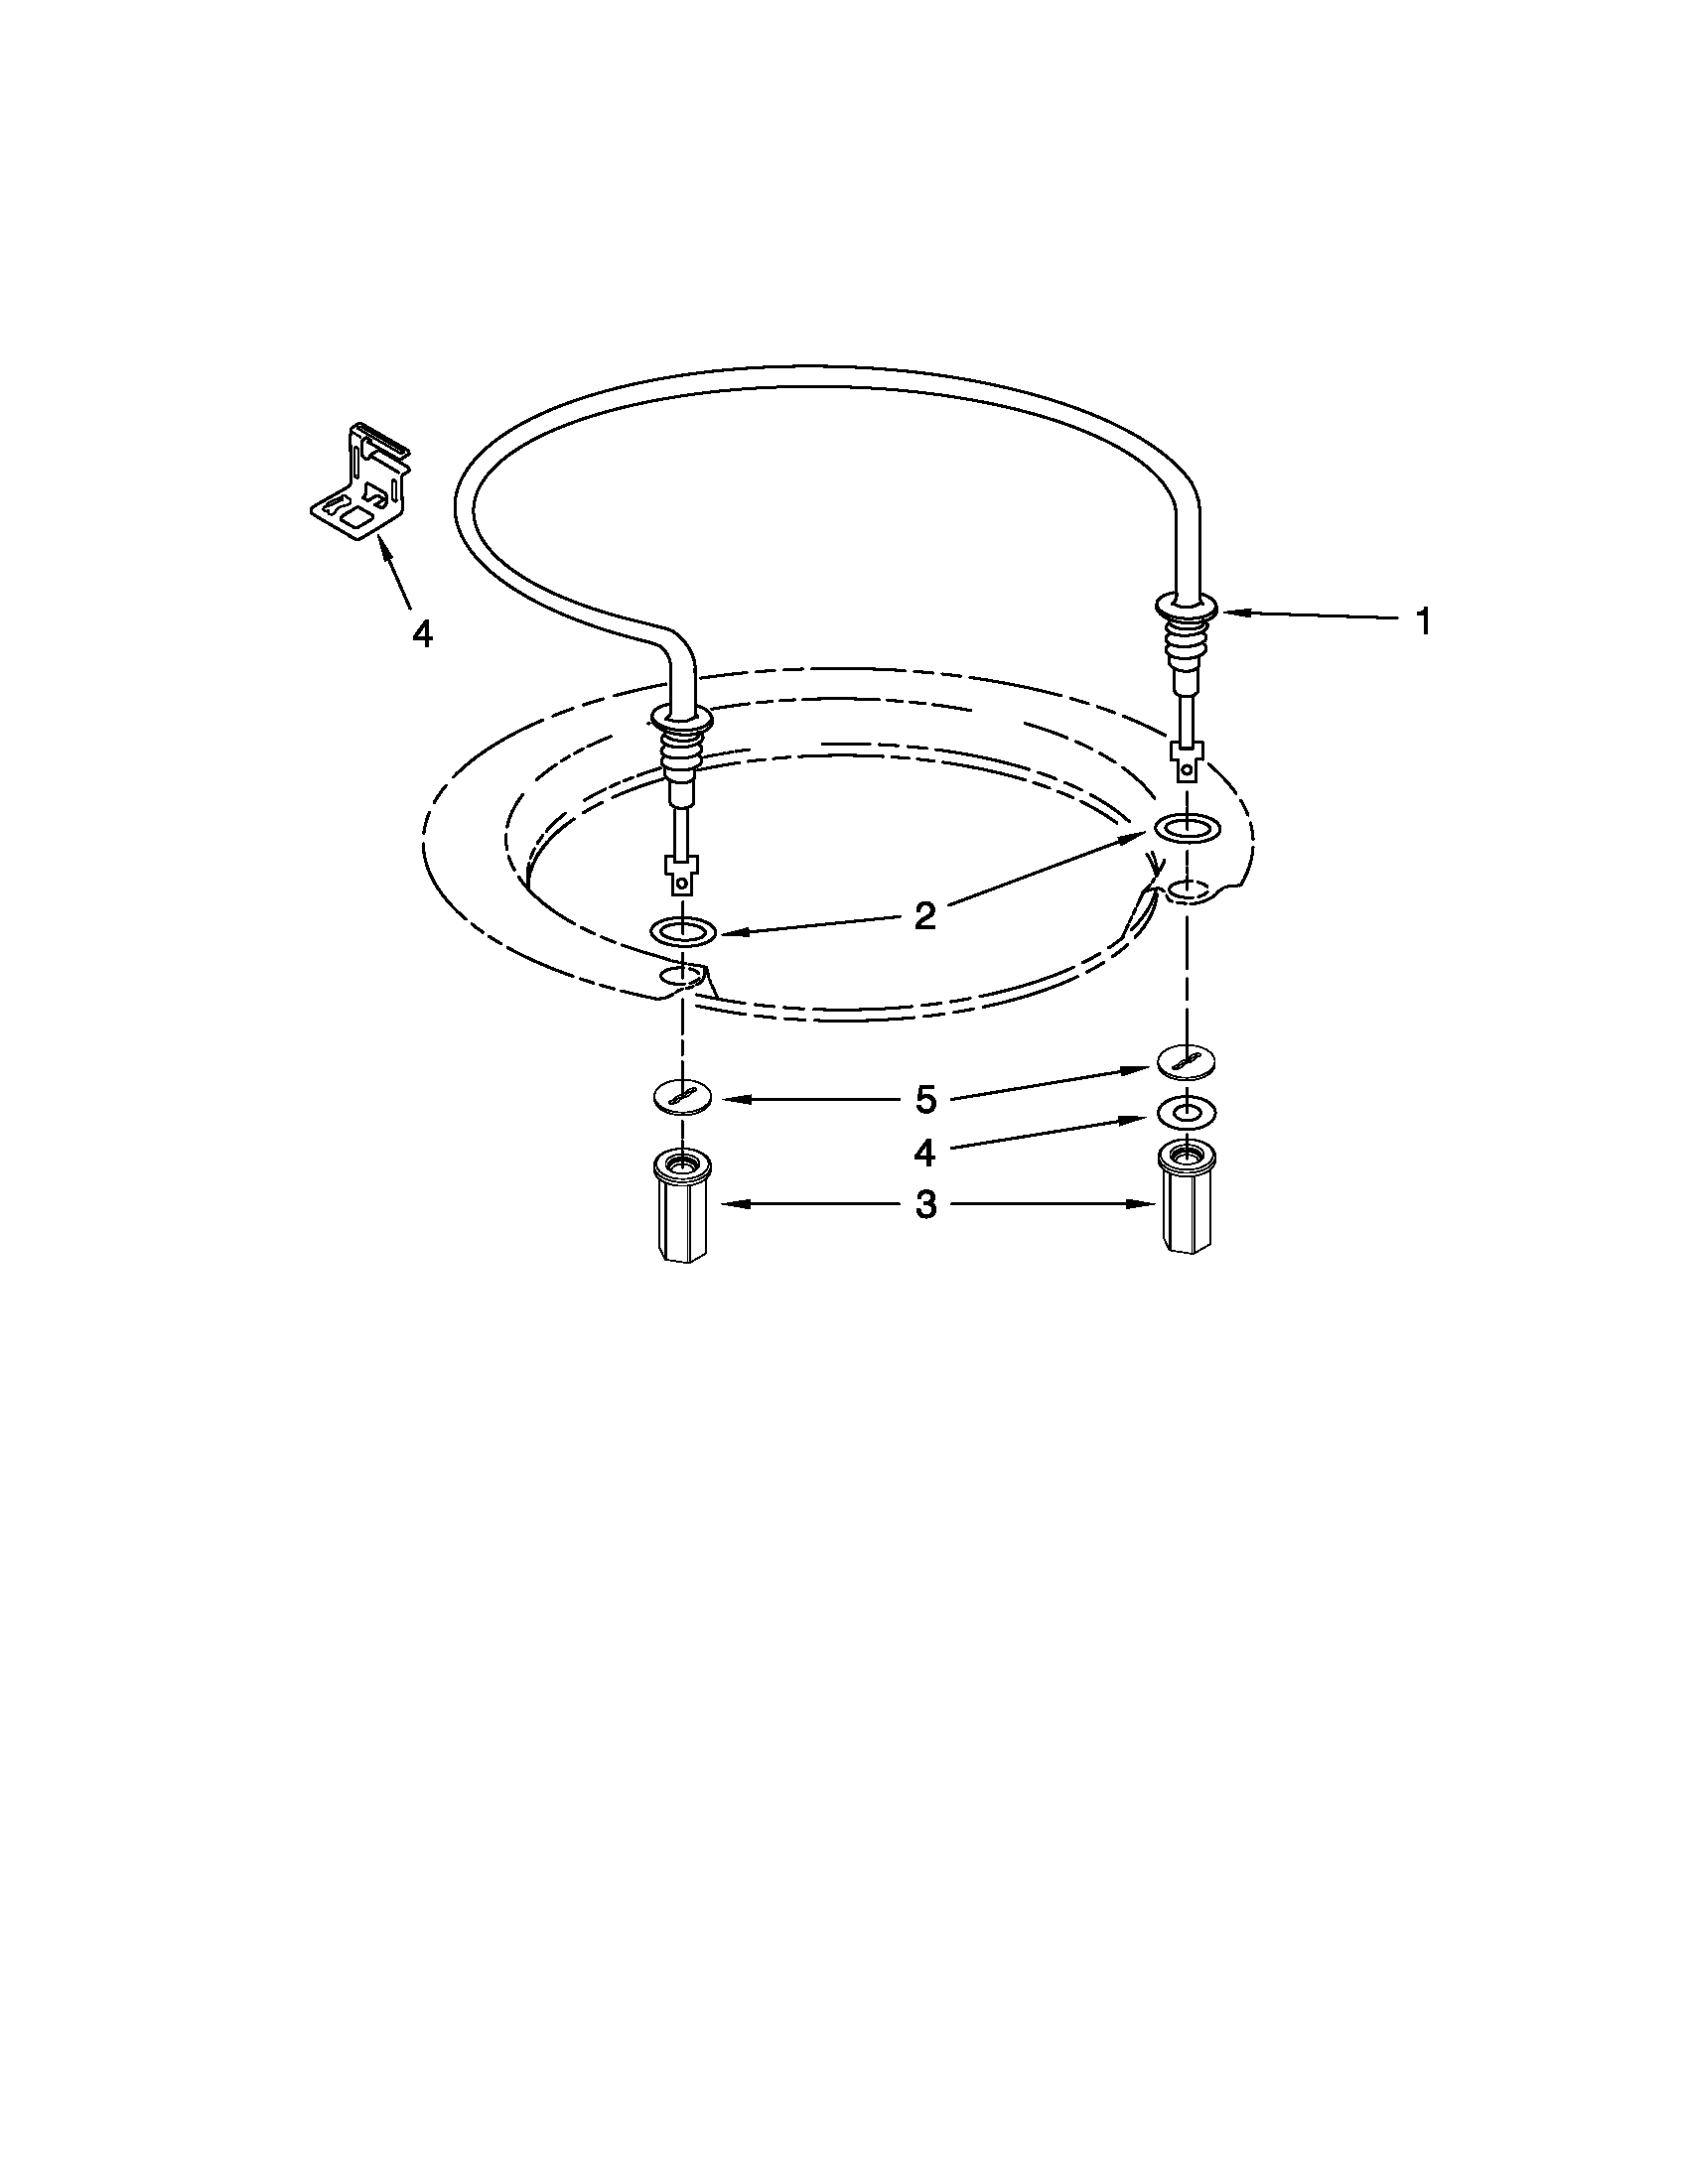 Kenmore 66513039K111 heater parts diagram